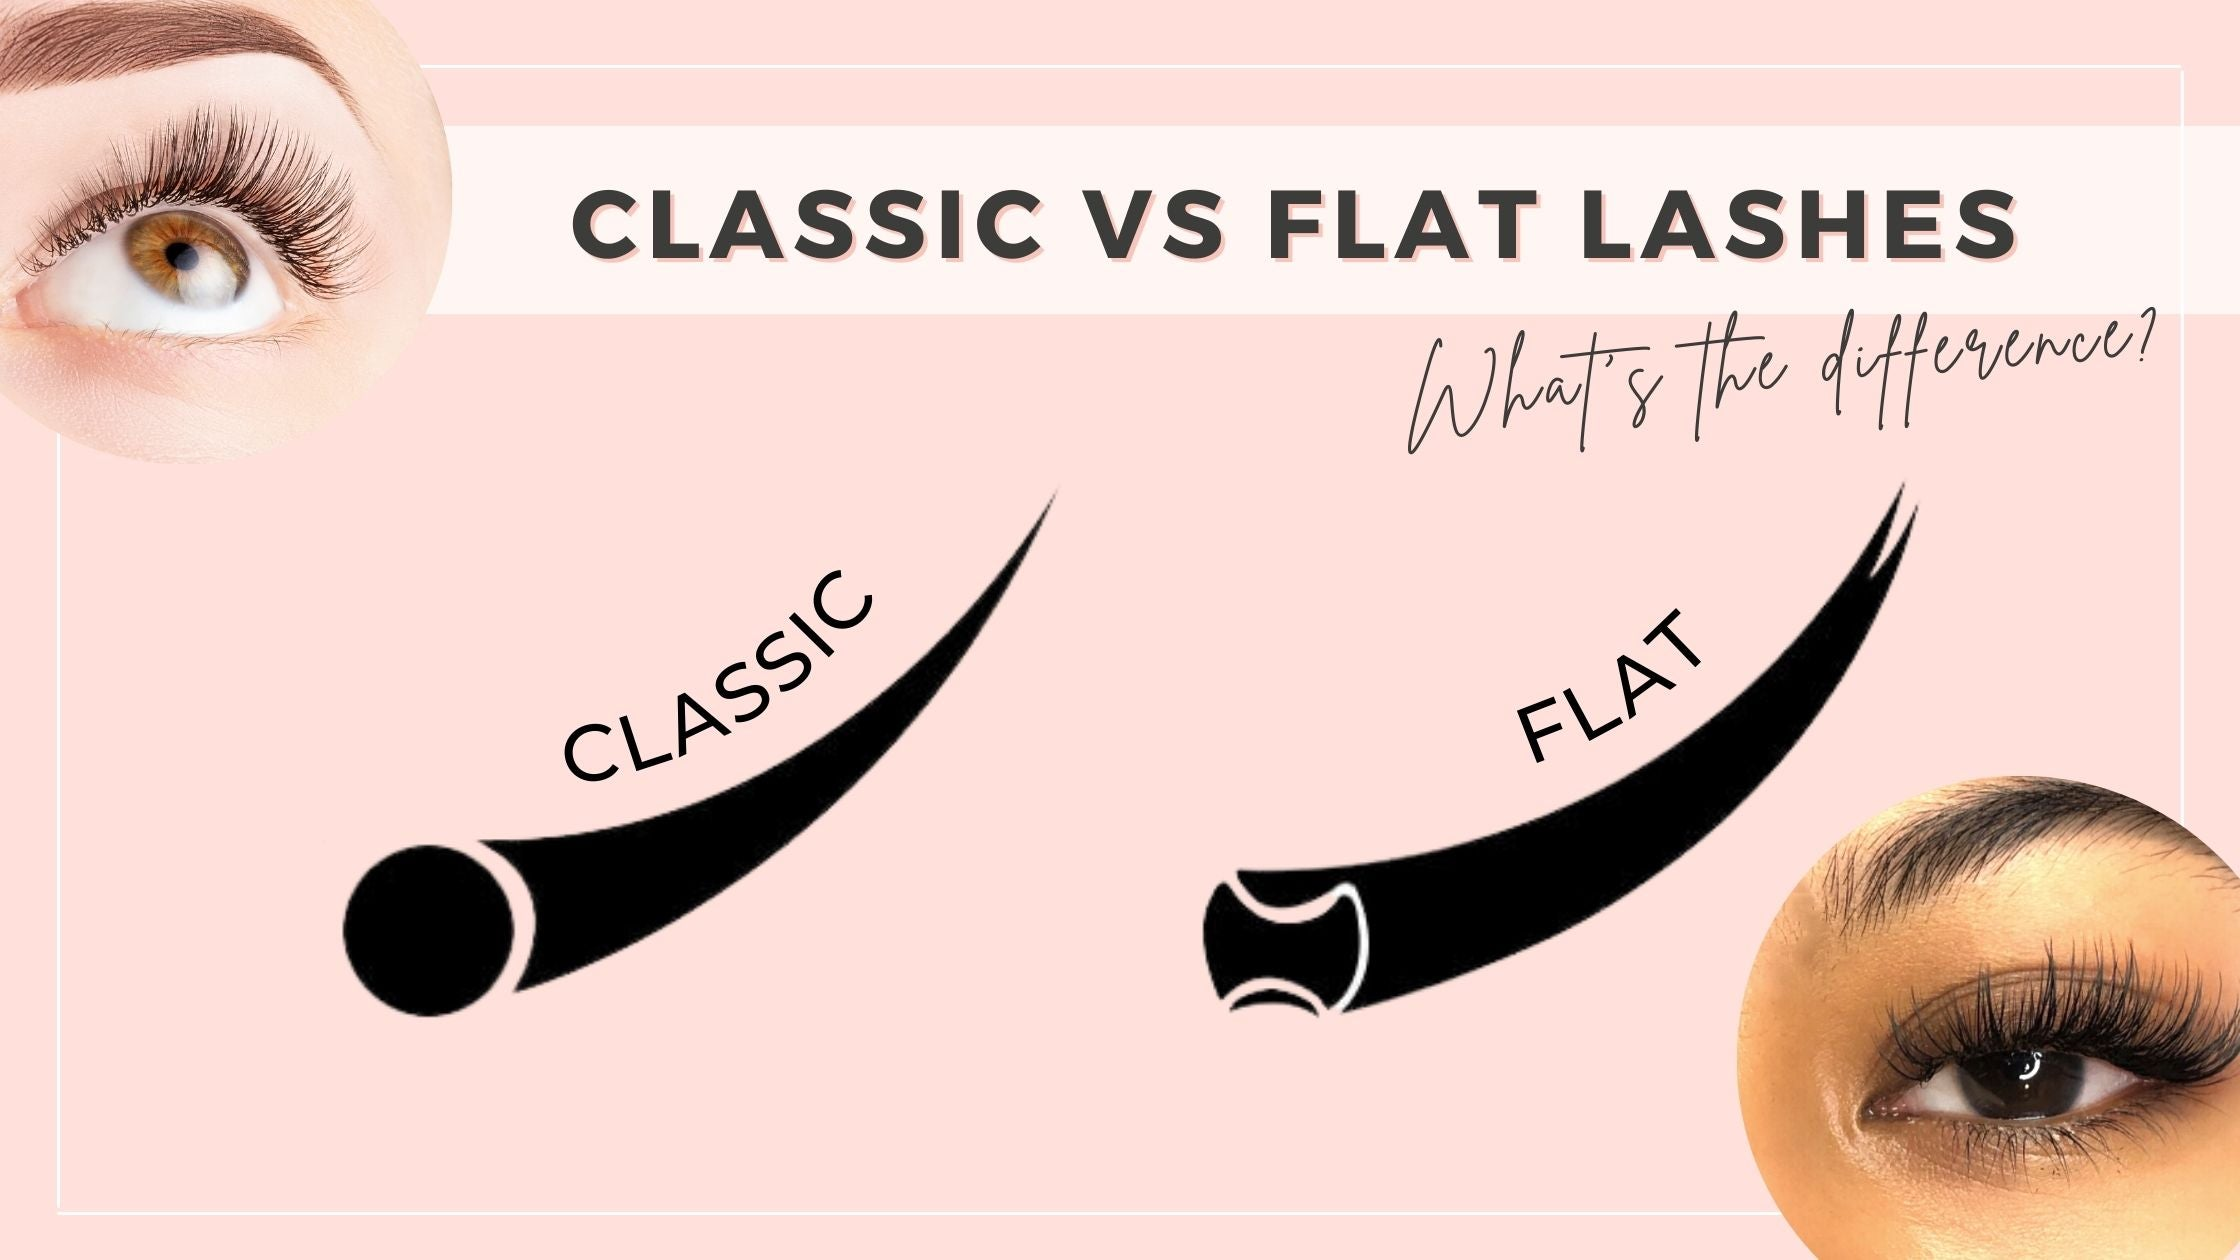 Classic vs flat lashes what's the difference